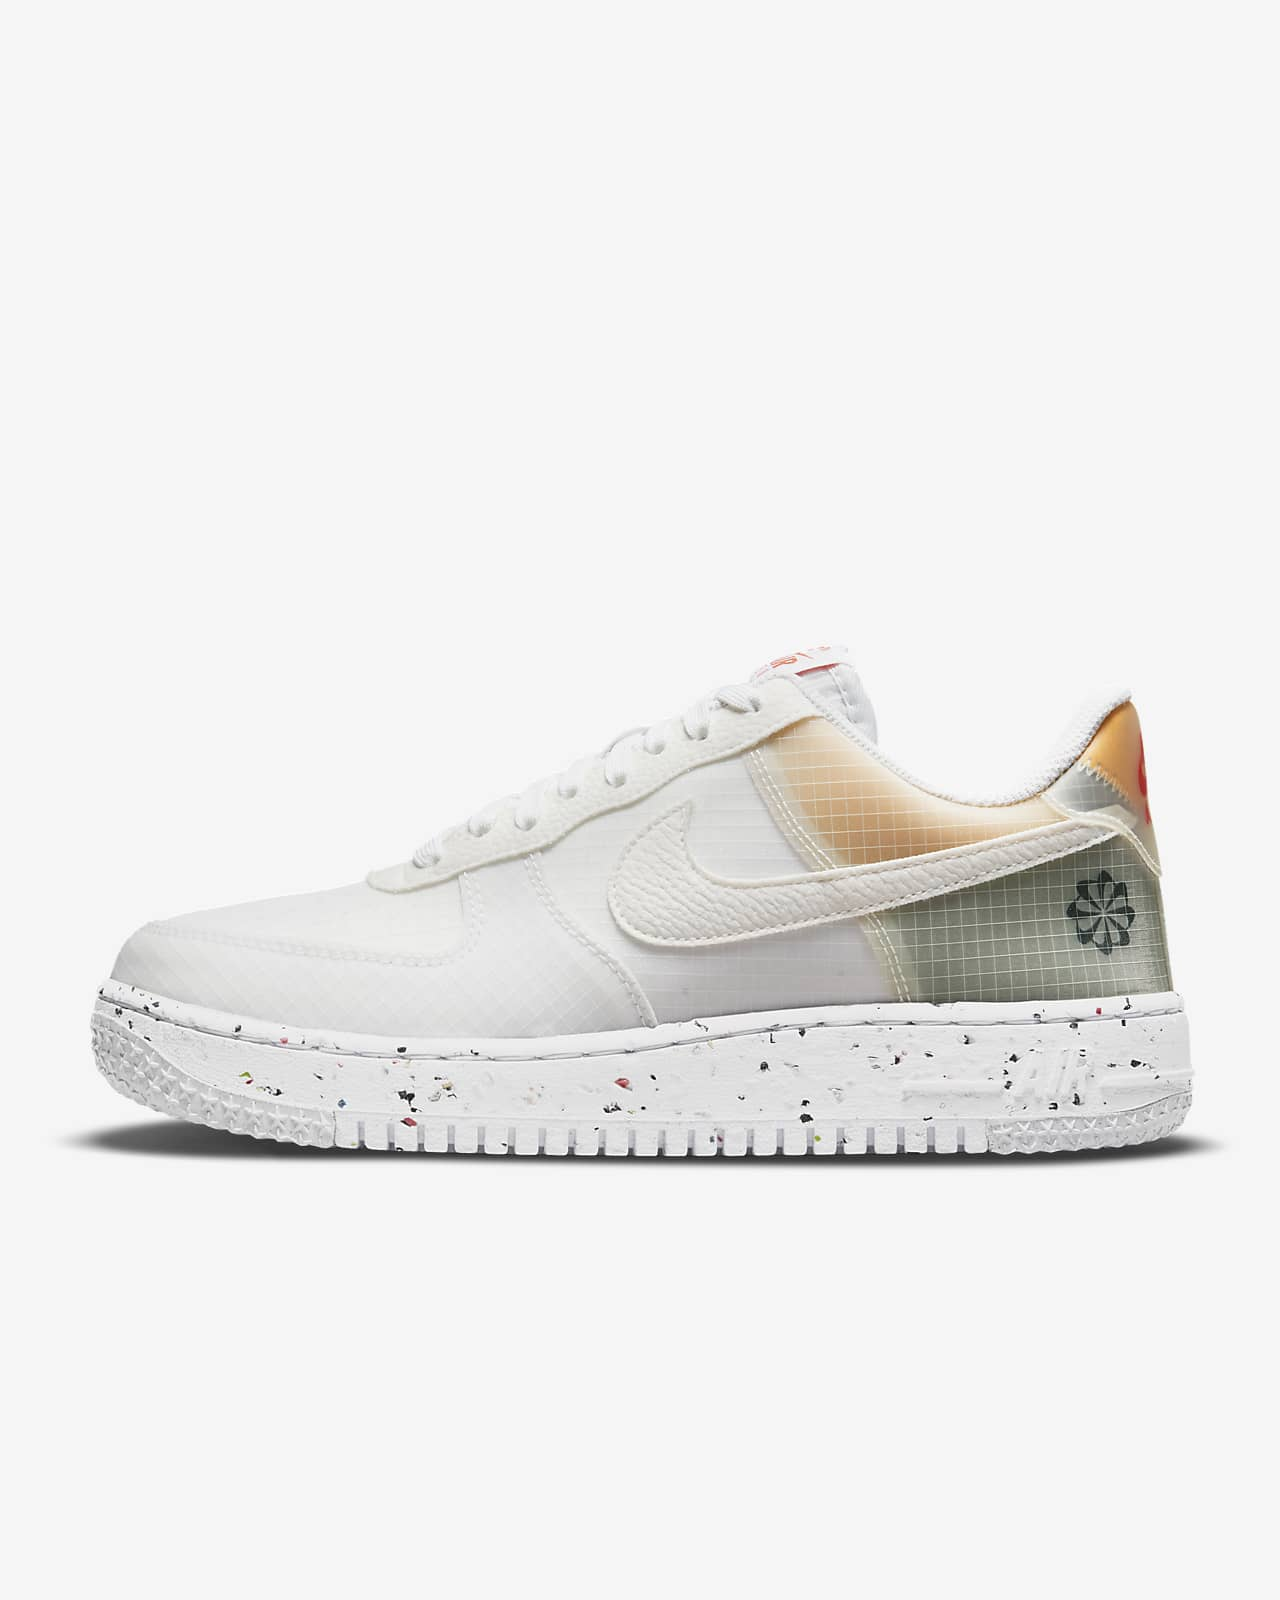 Chaussure Nike Air Force 1 Crater pour Homme